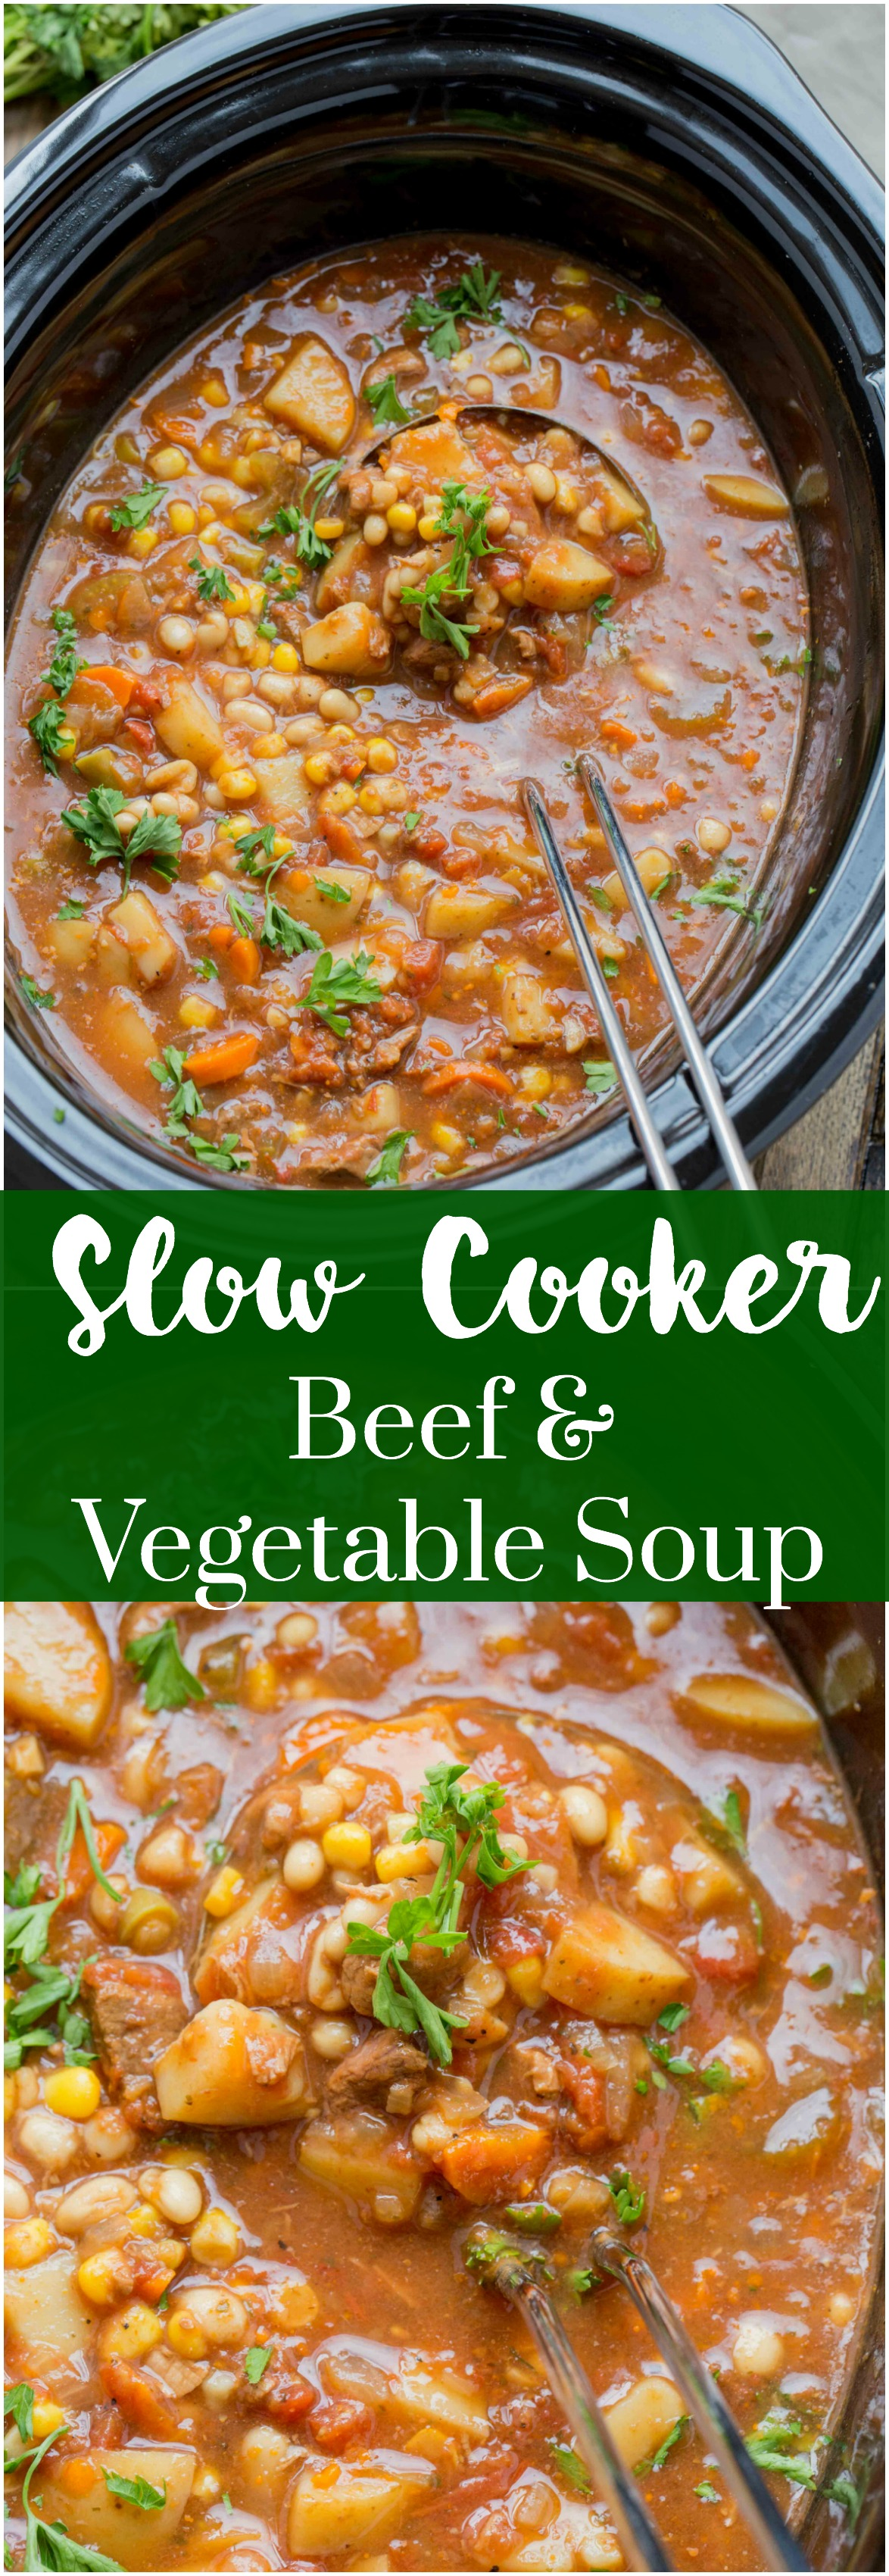 Slow Cooker Beef and Vegetable Soup ~ Easy to make, loaded with hearty vegetables and delicious beef. This is one slow cooker soup you must make this winter.